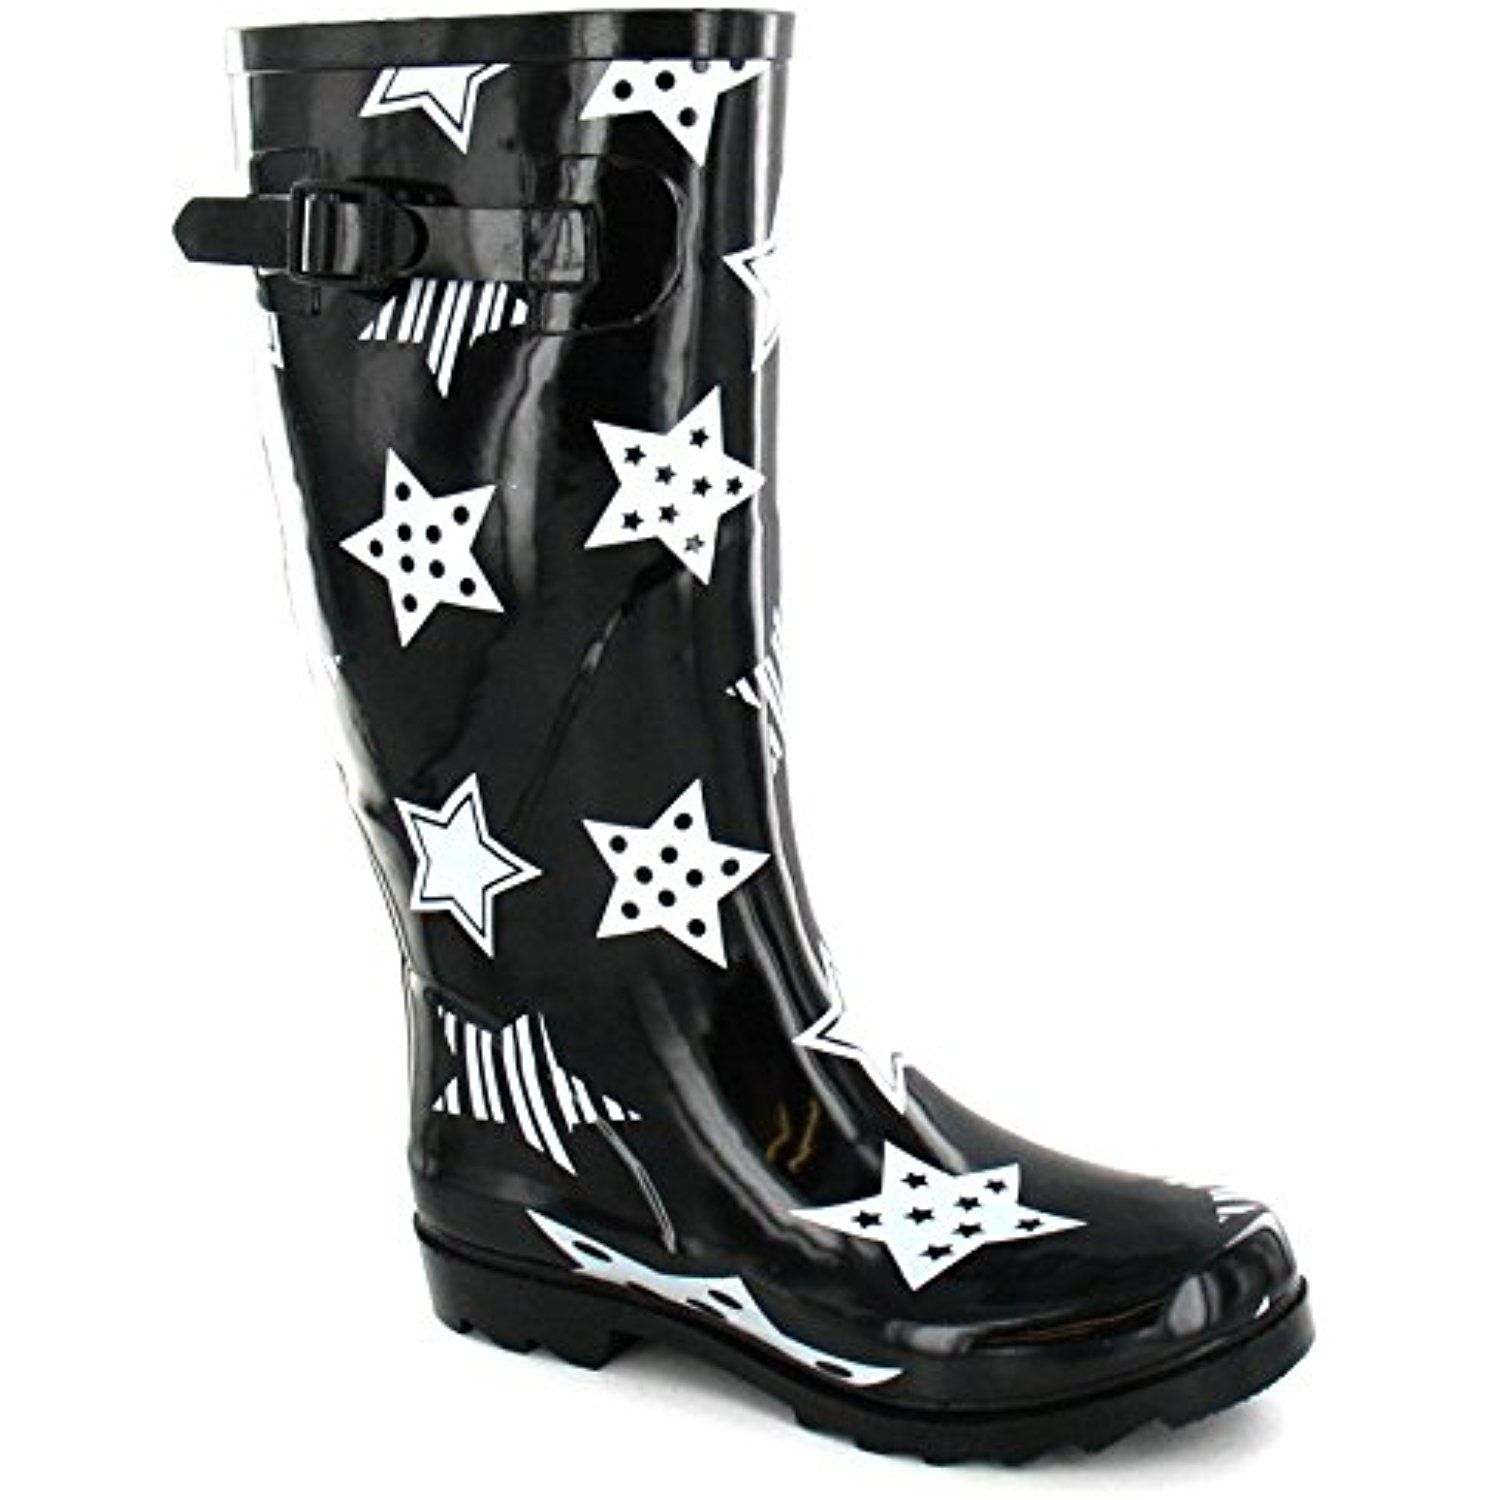 Womens/Ladies Rubber Star Print Wellington Boots